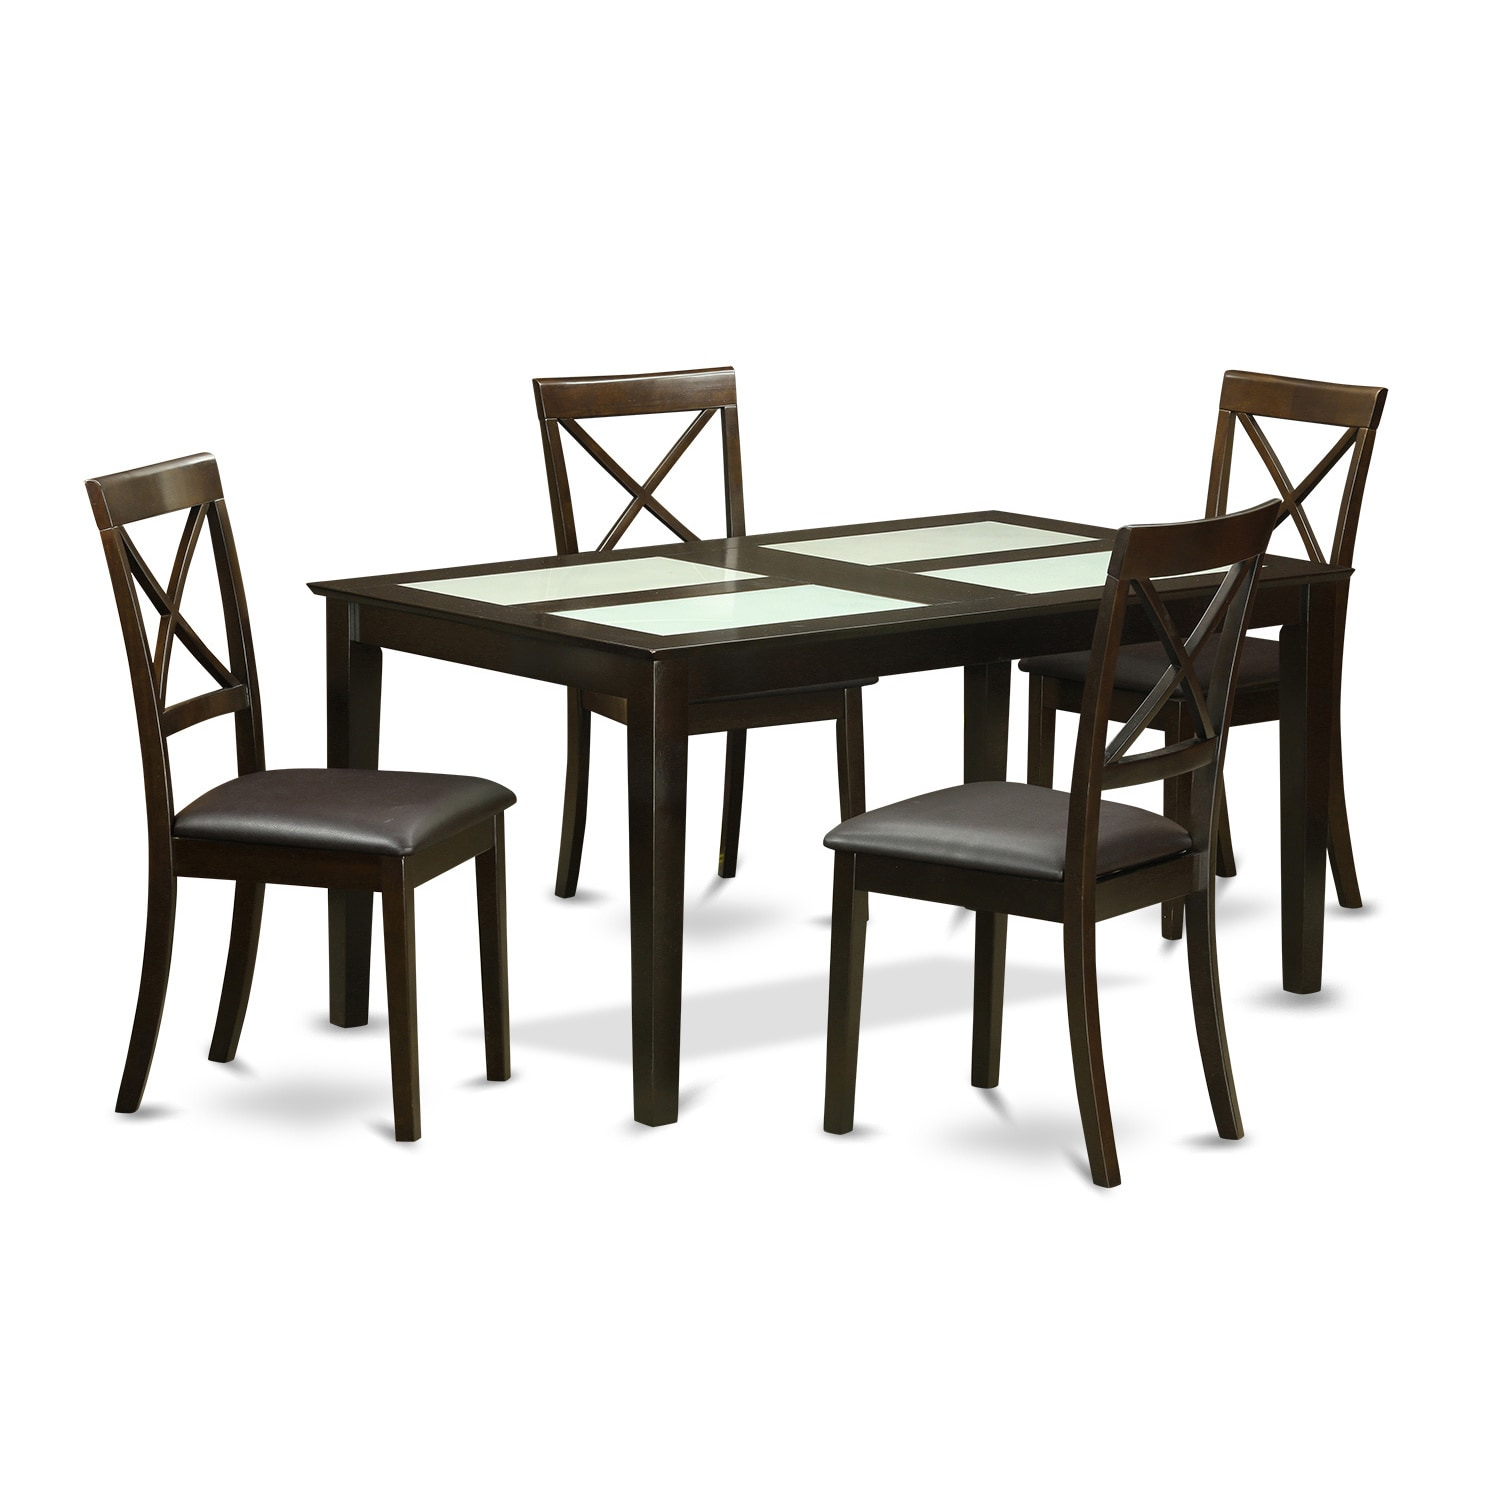 Shop modern black finish solid rubberwood 5 piece dining set with capri table and 4 dining chairs free shipping today overstock com 12026030